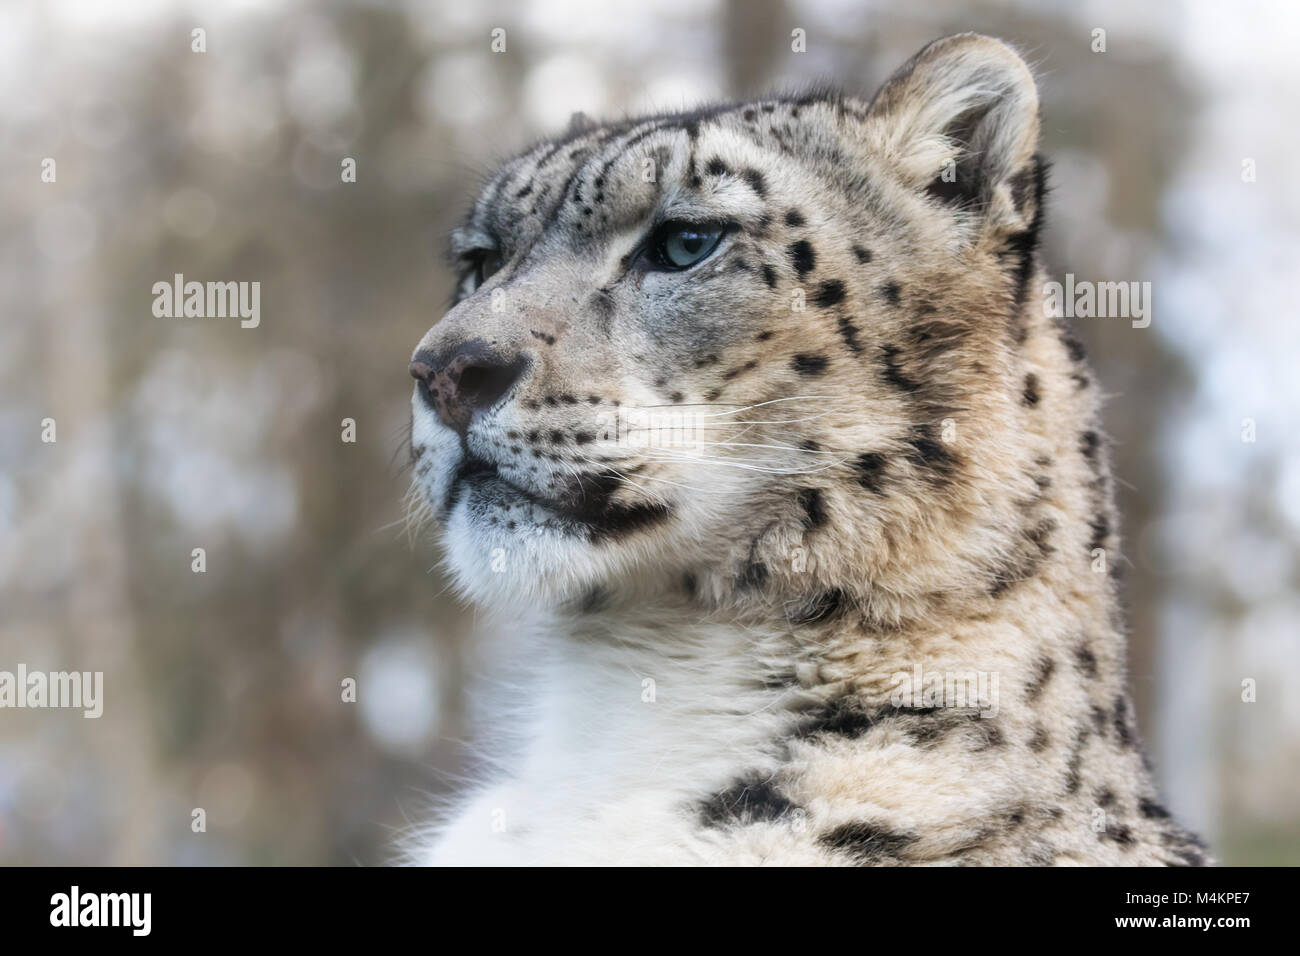 Alert and watchful adult snow leopard in sunlight portrait. - Stock Image